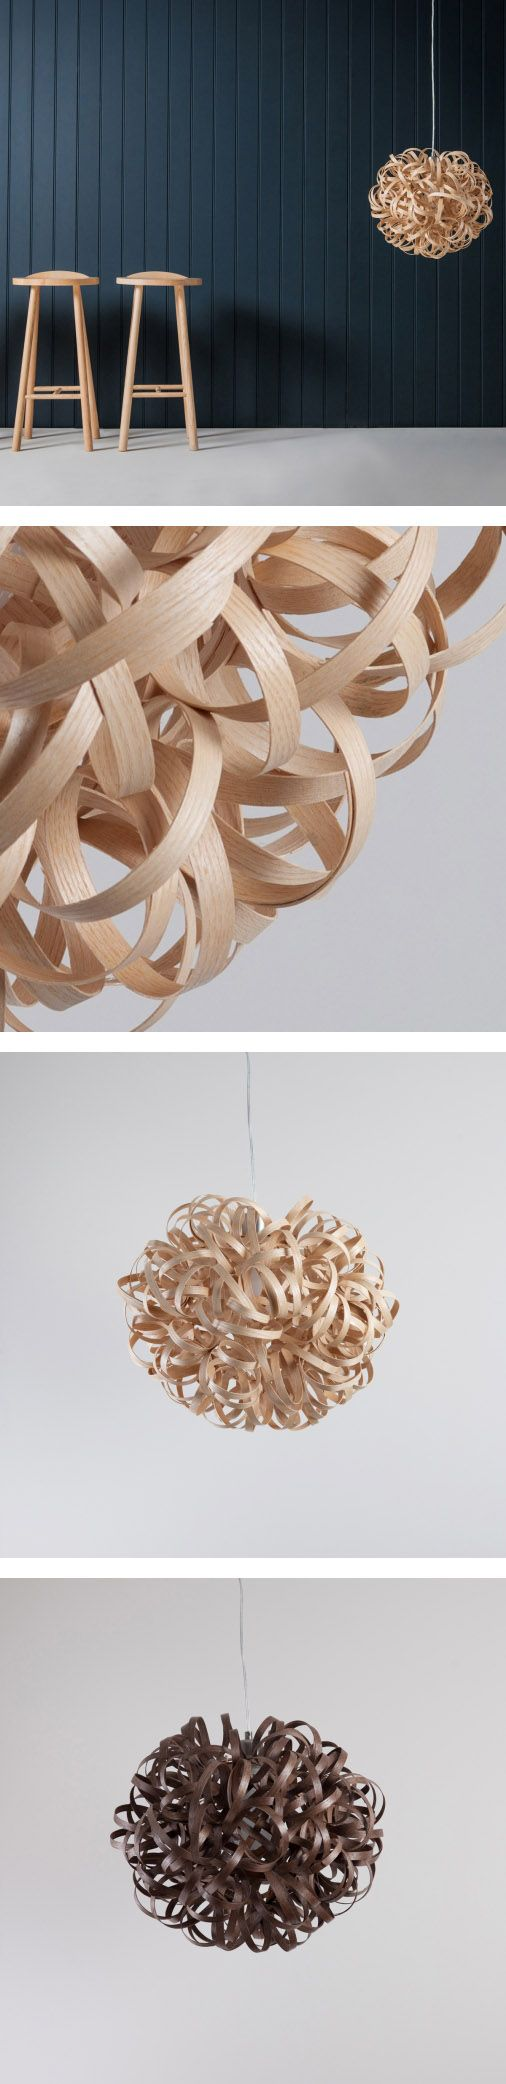 The beautiful sculptural form of Tom's iconic No. 1 Pendant is hand crafted using 80 metres of wood. Steam bent strips of ash (pale wood), oak (medium wood) or walnut (dark wood) are woven, coiled and twisted around one another to produce a unique and stunning lampshade whether you have the light on or off.